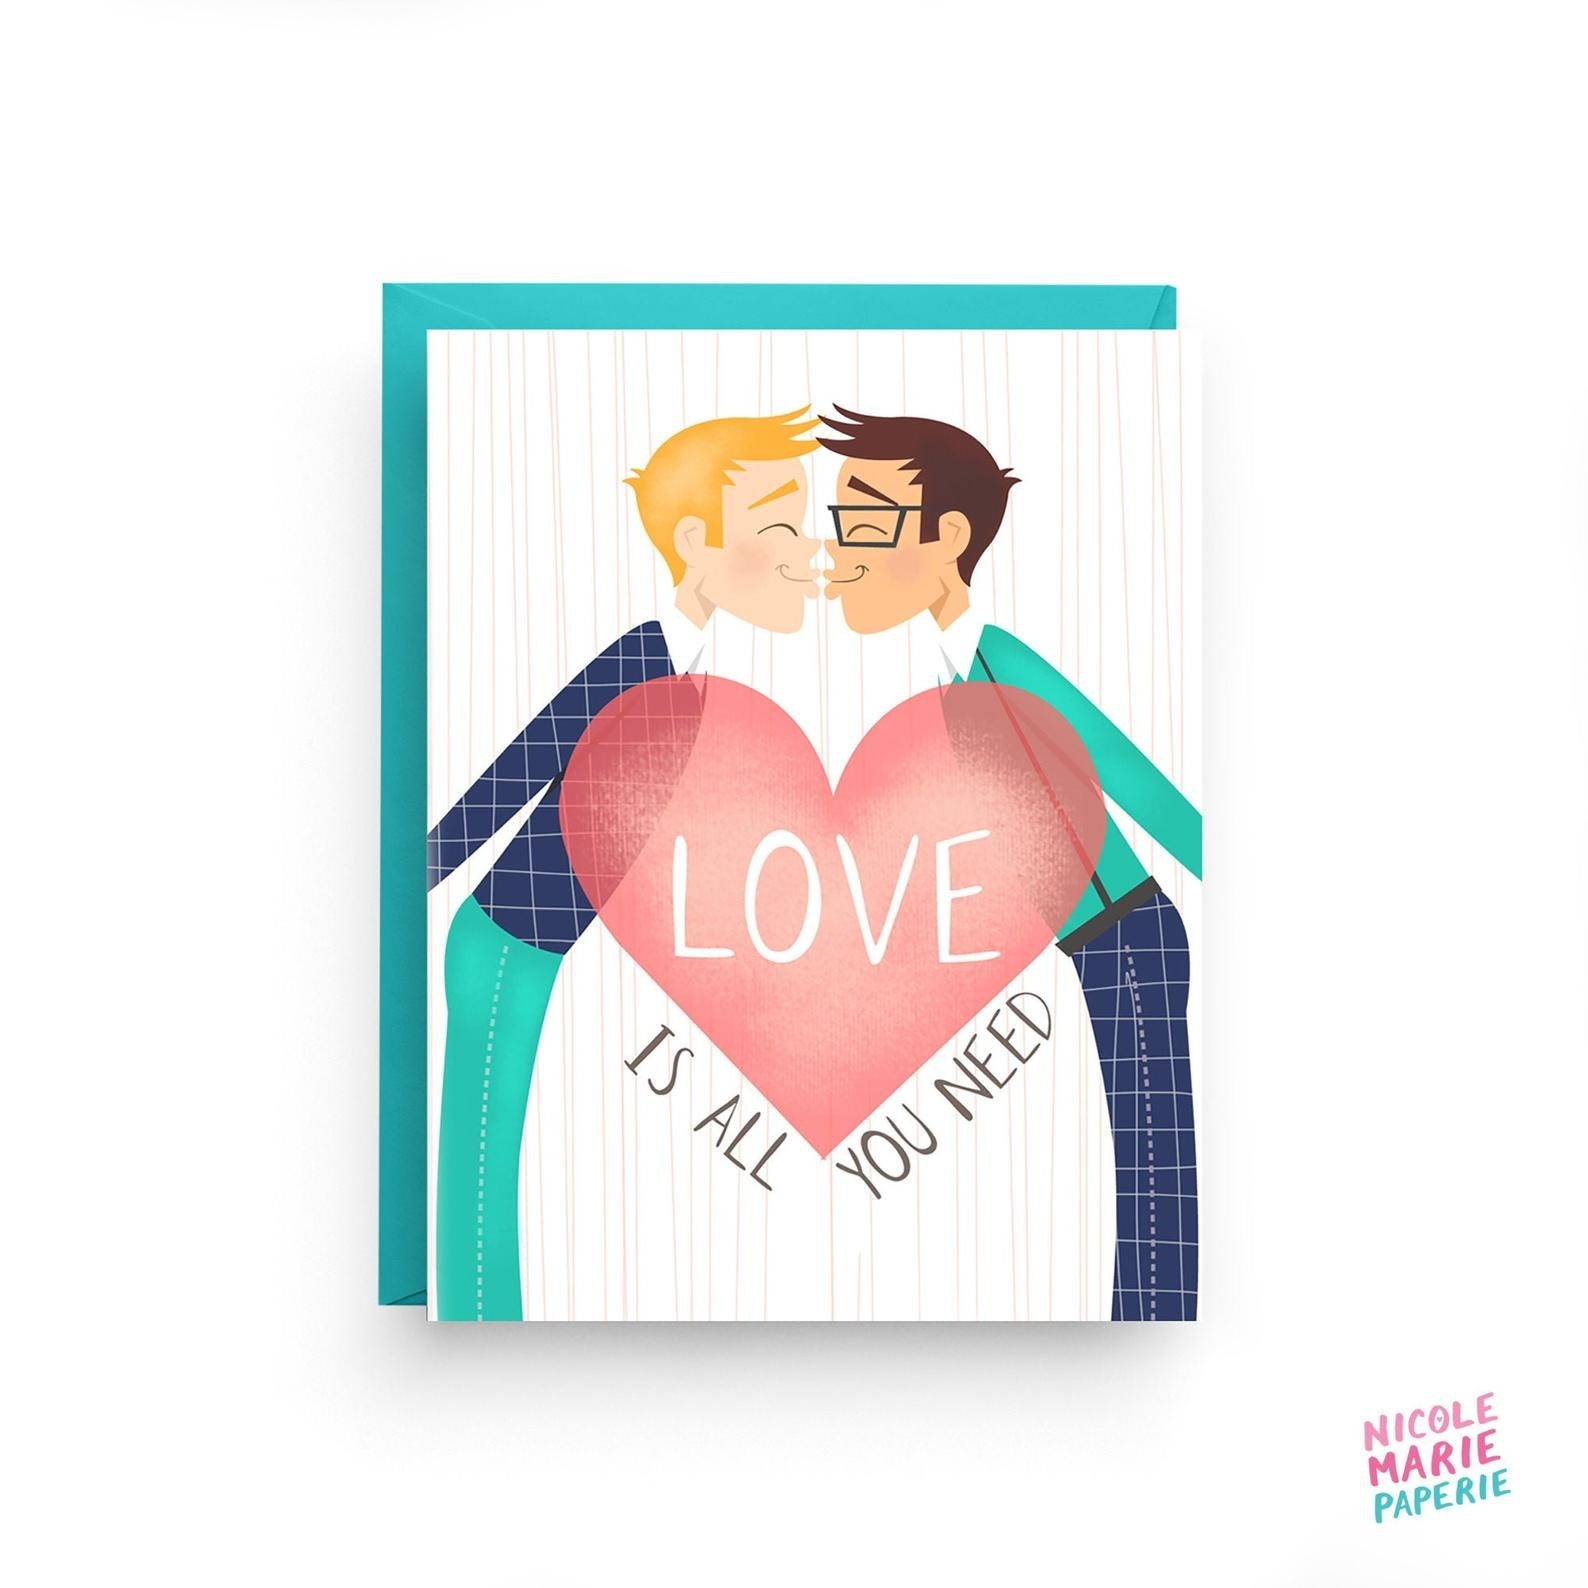 The greeting card